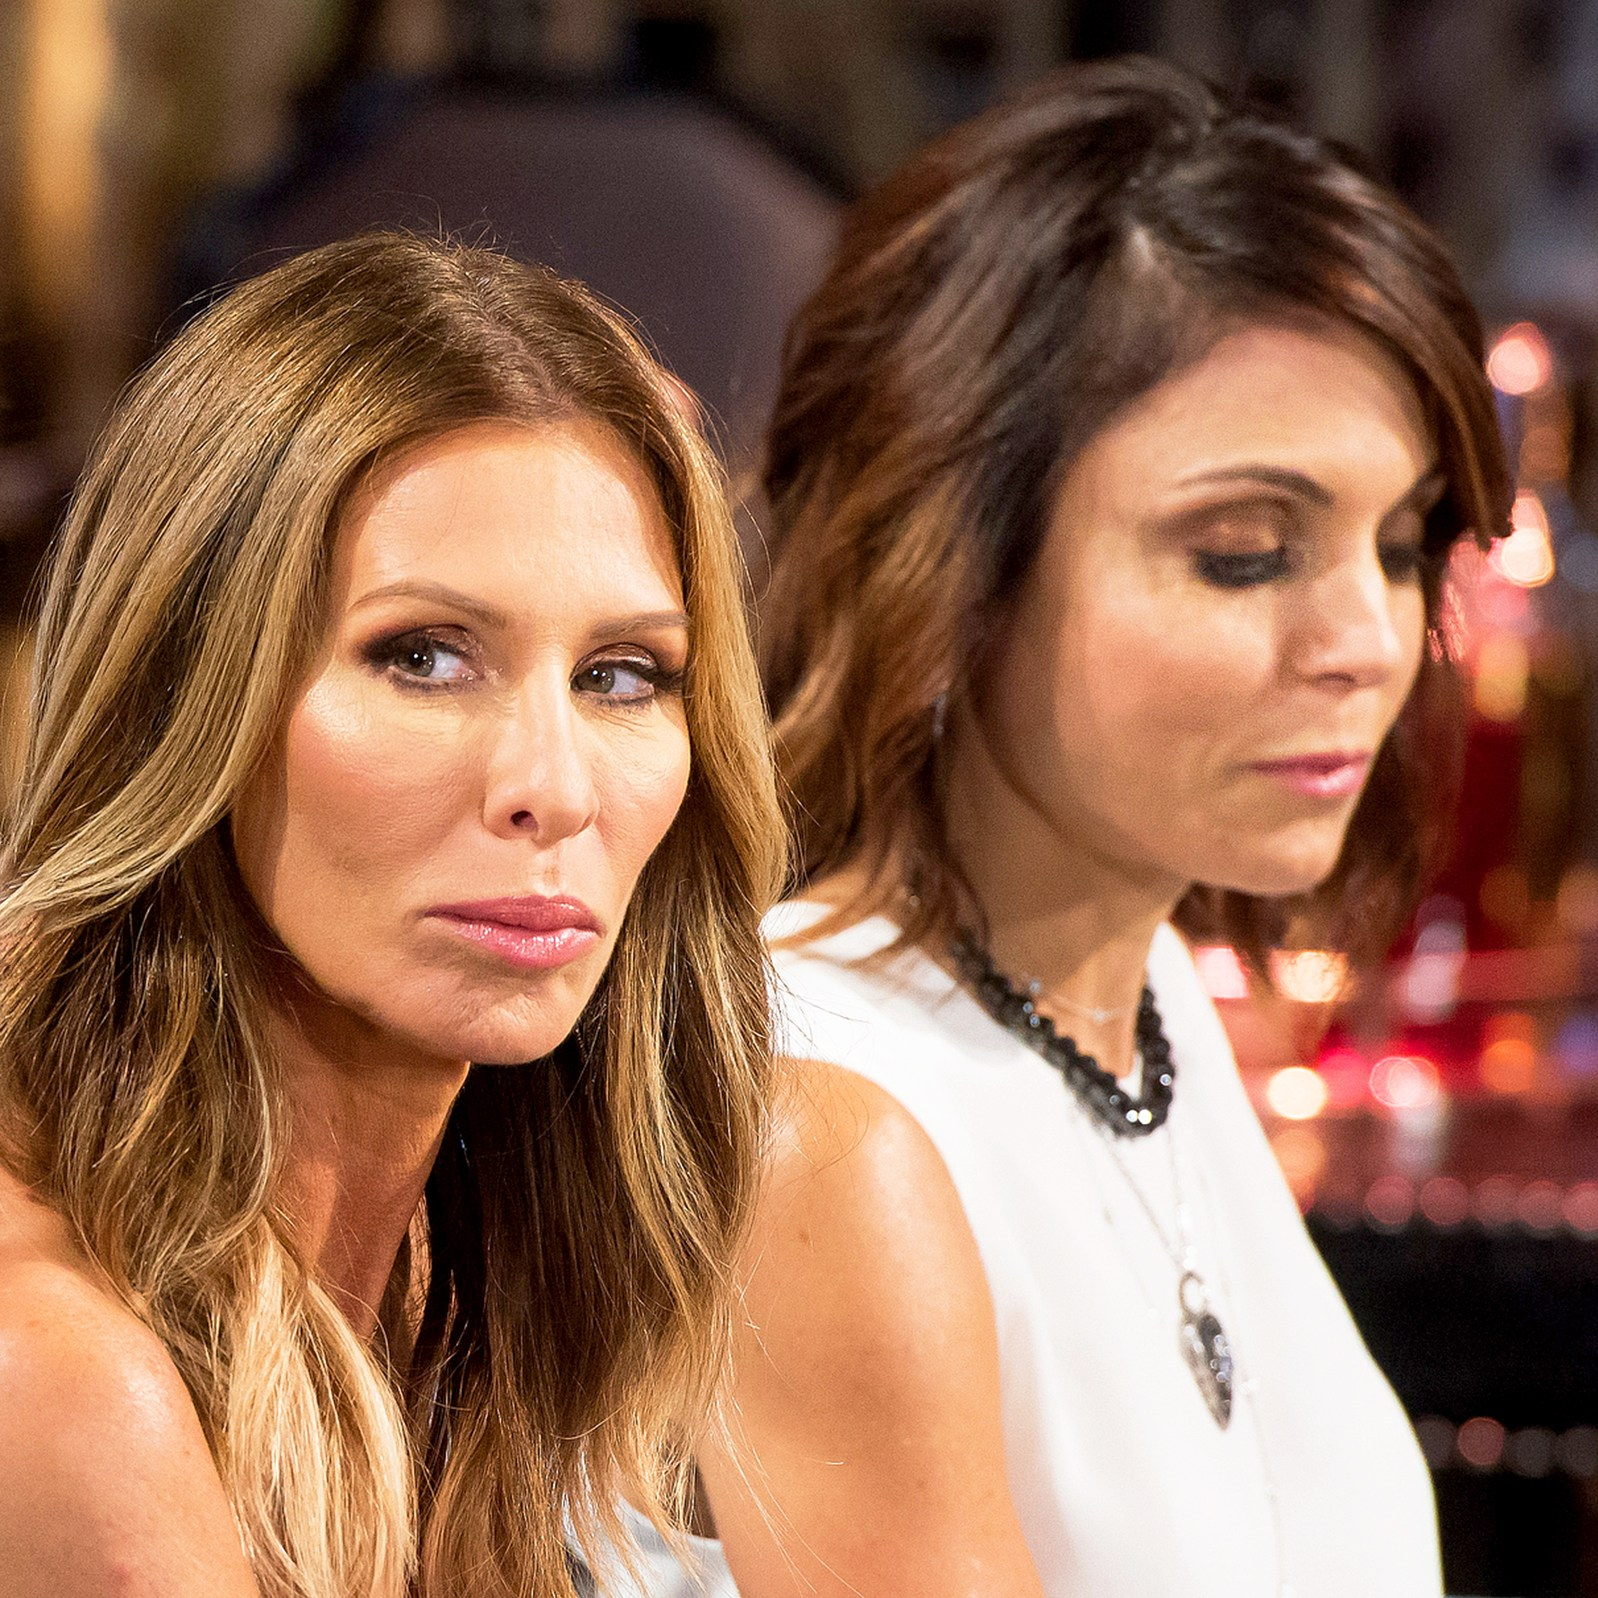 Carole Radziwill and Bethenny Frankel on 'The Real Housewives of New York City' reunion